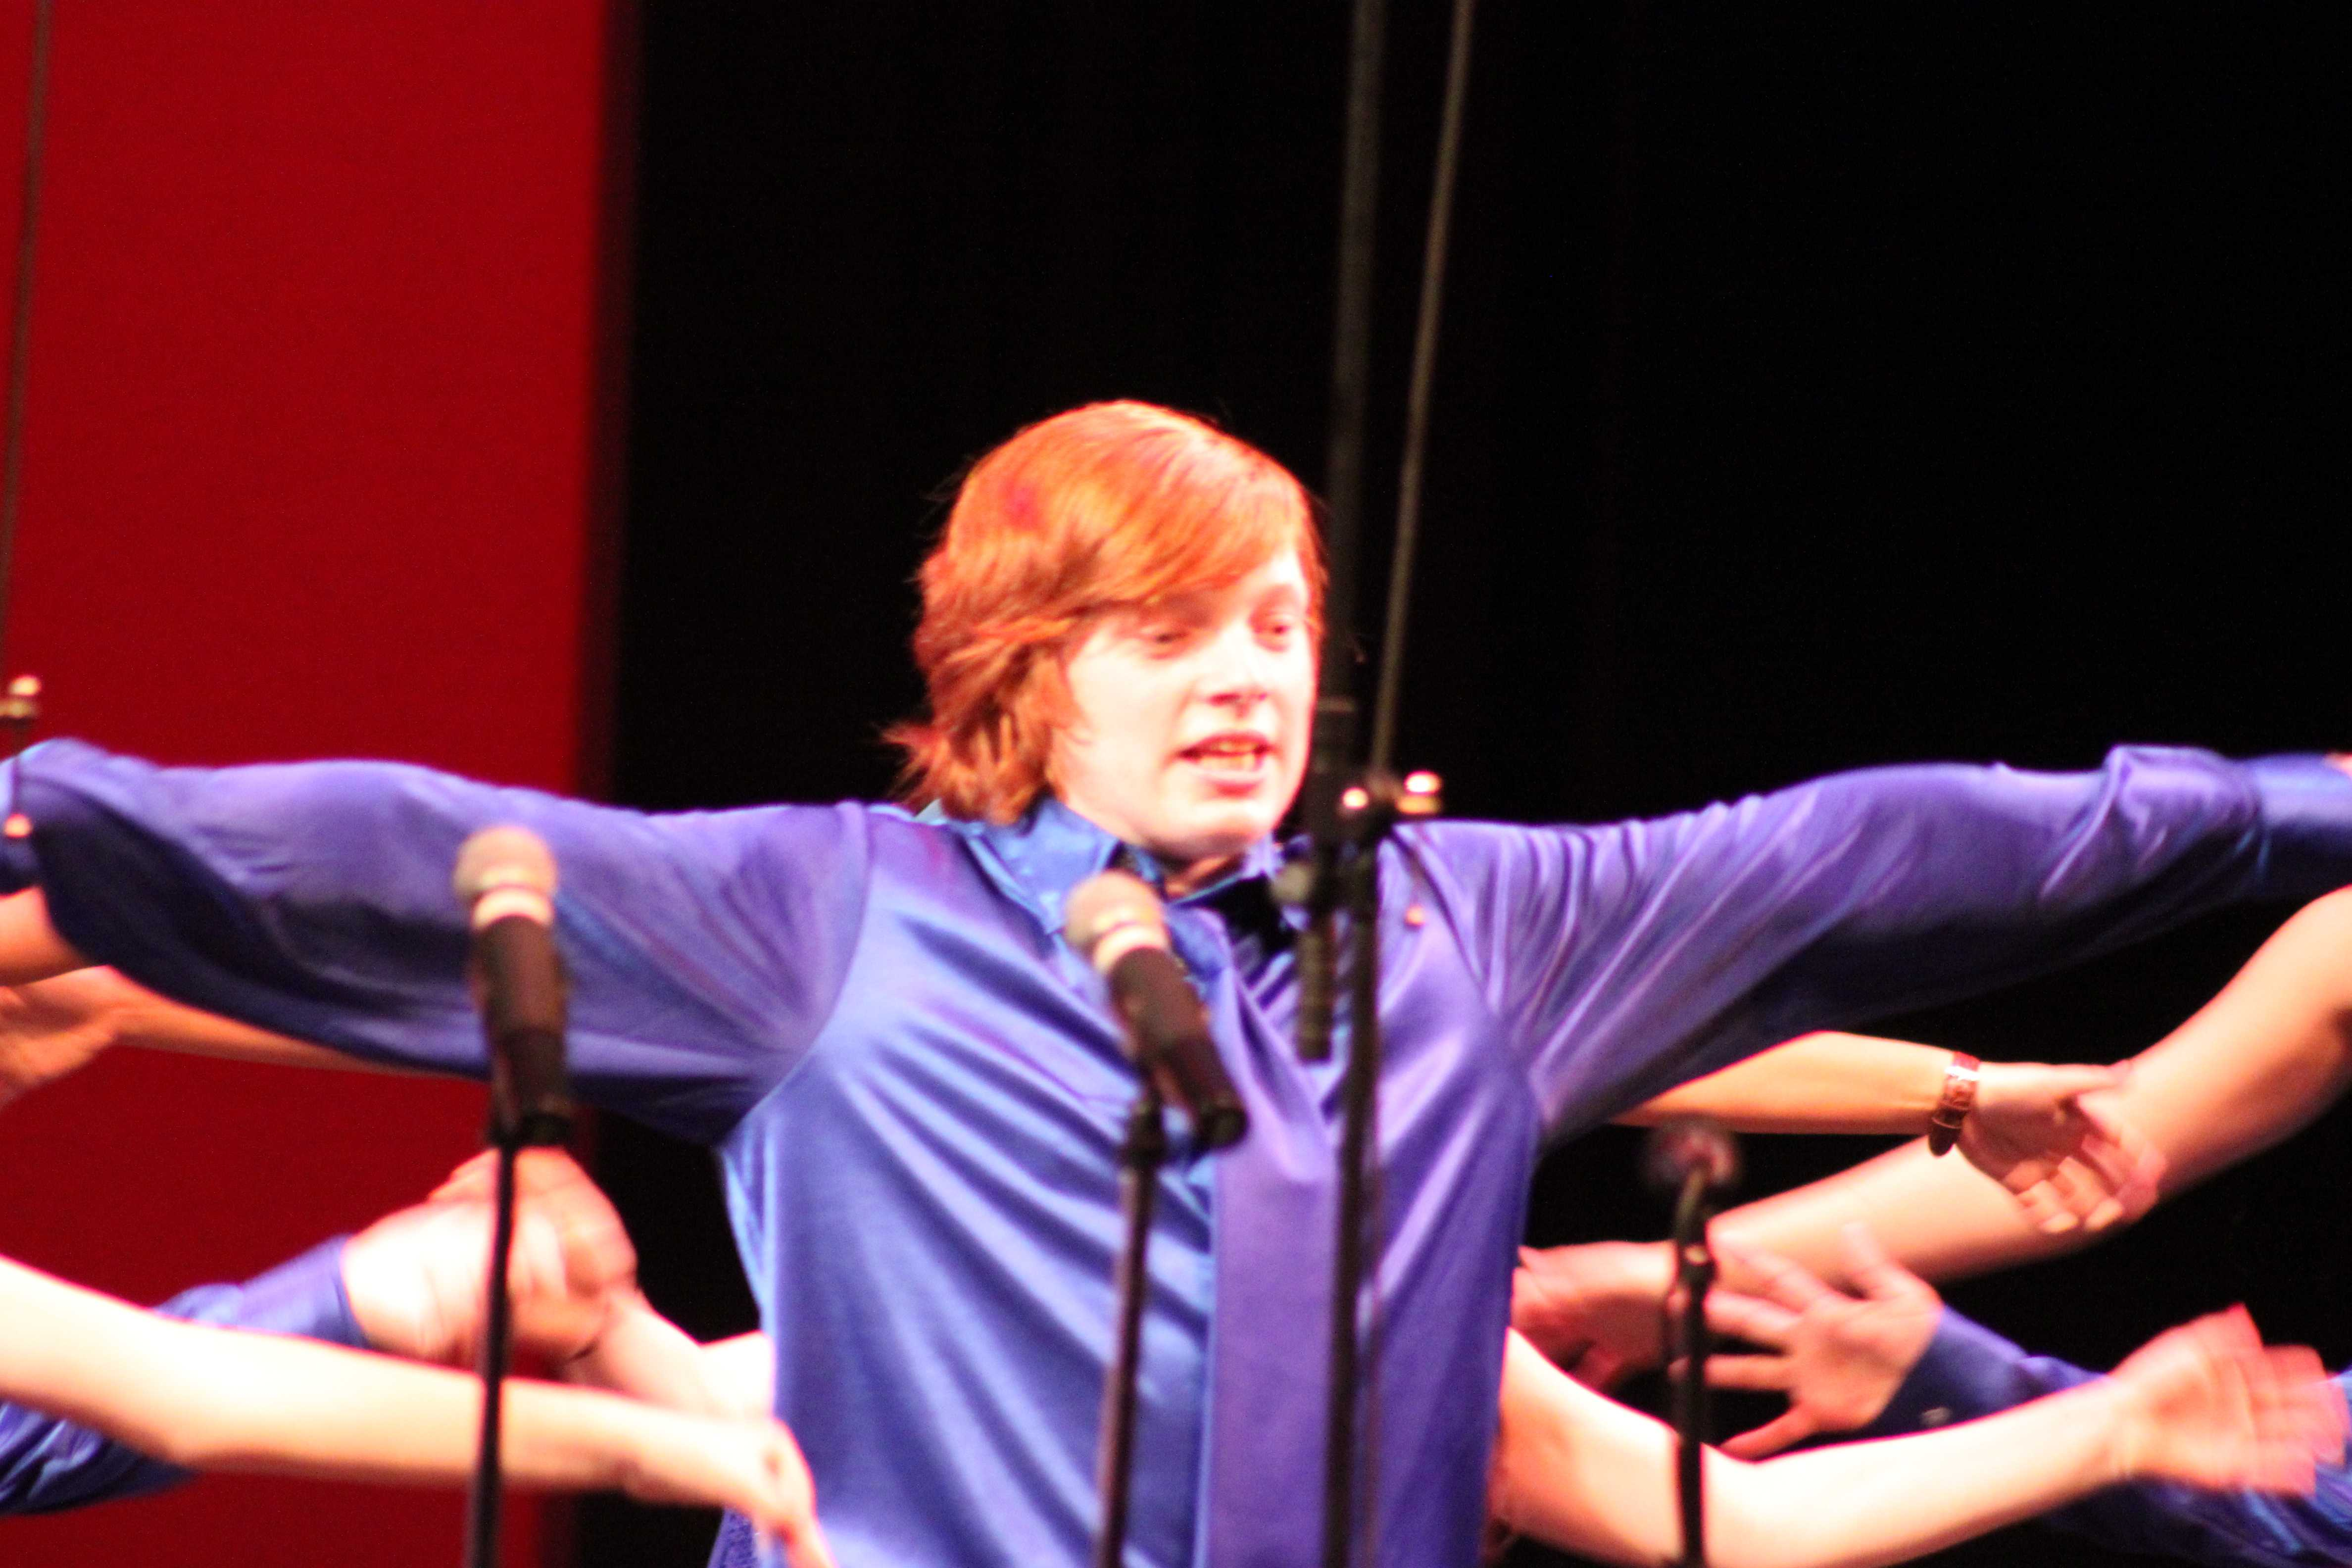 Ron Weasley making a surpirse (and blurry) apperance.